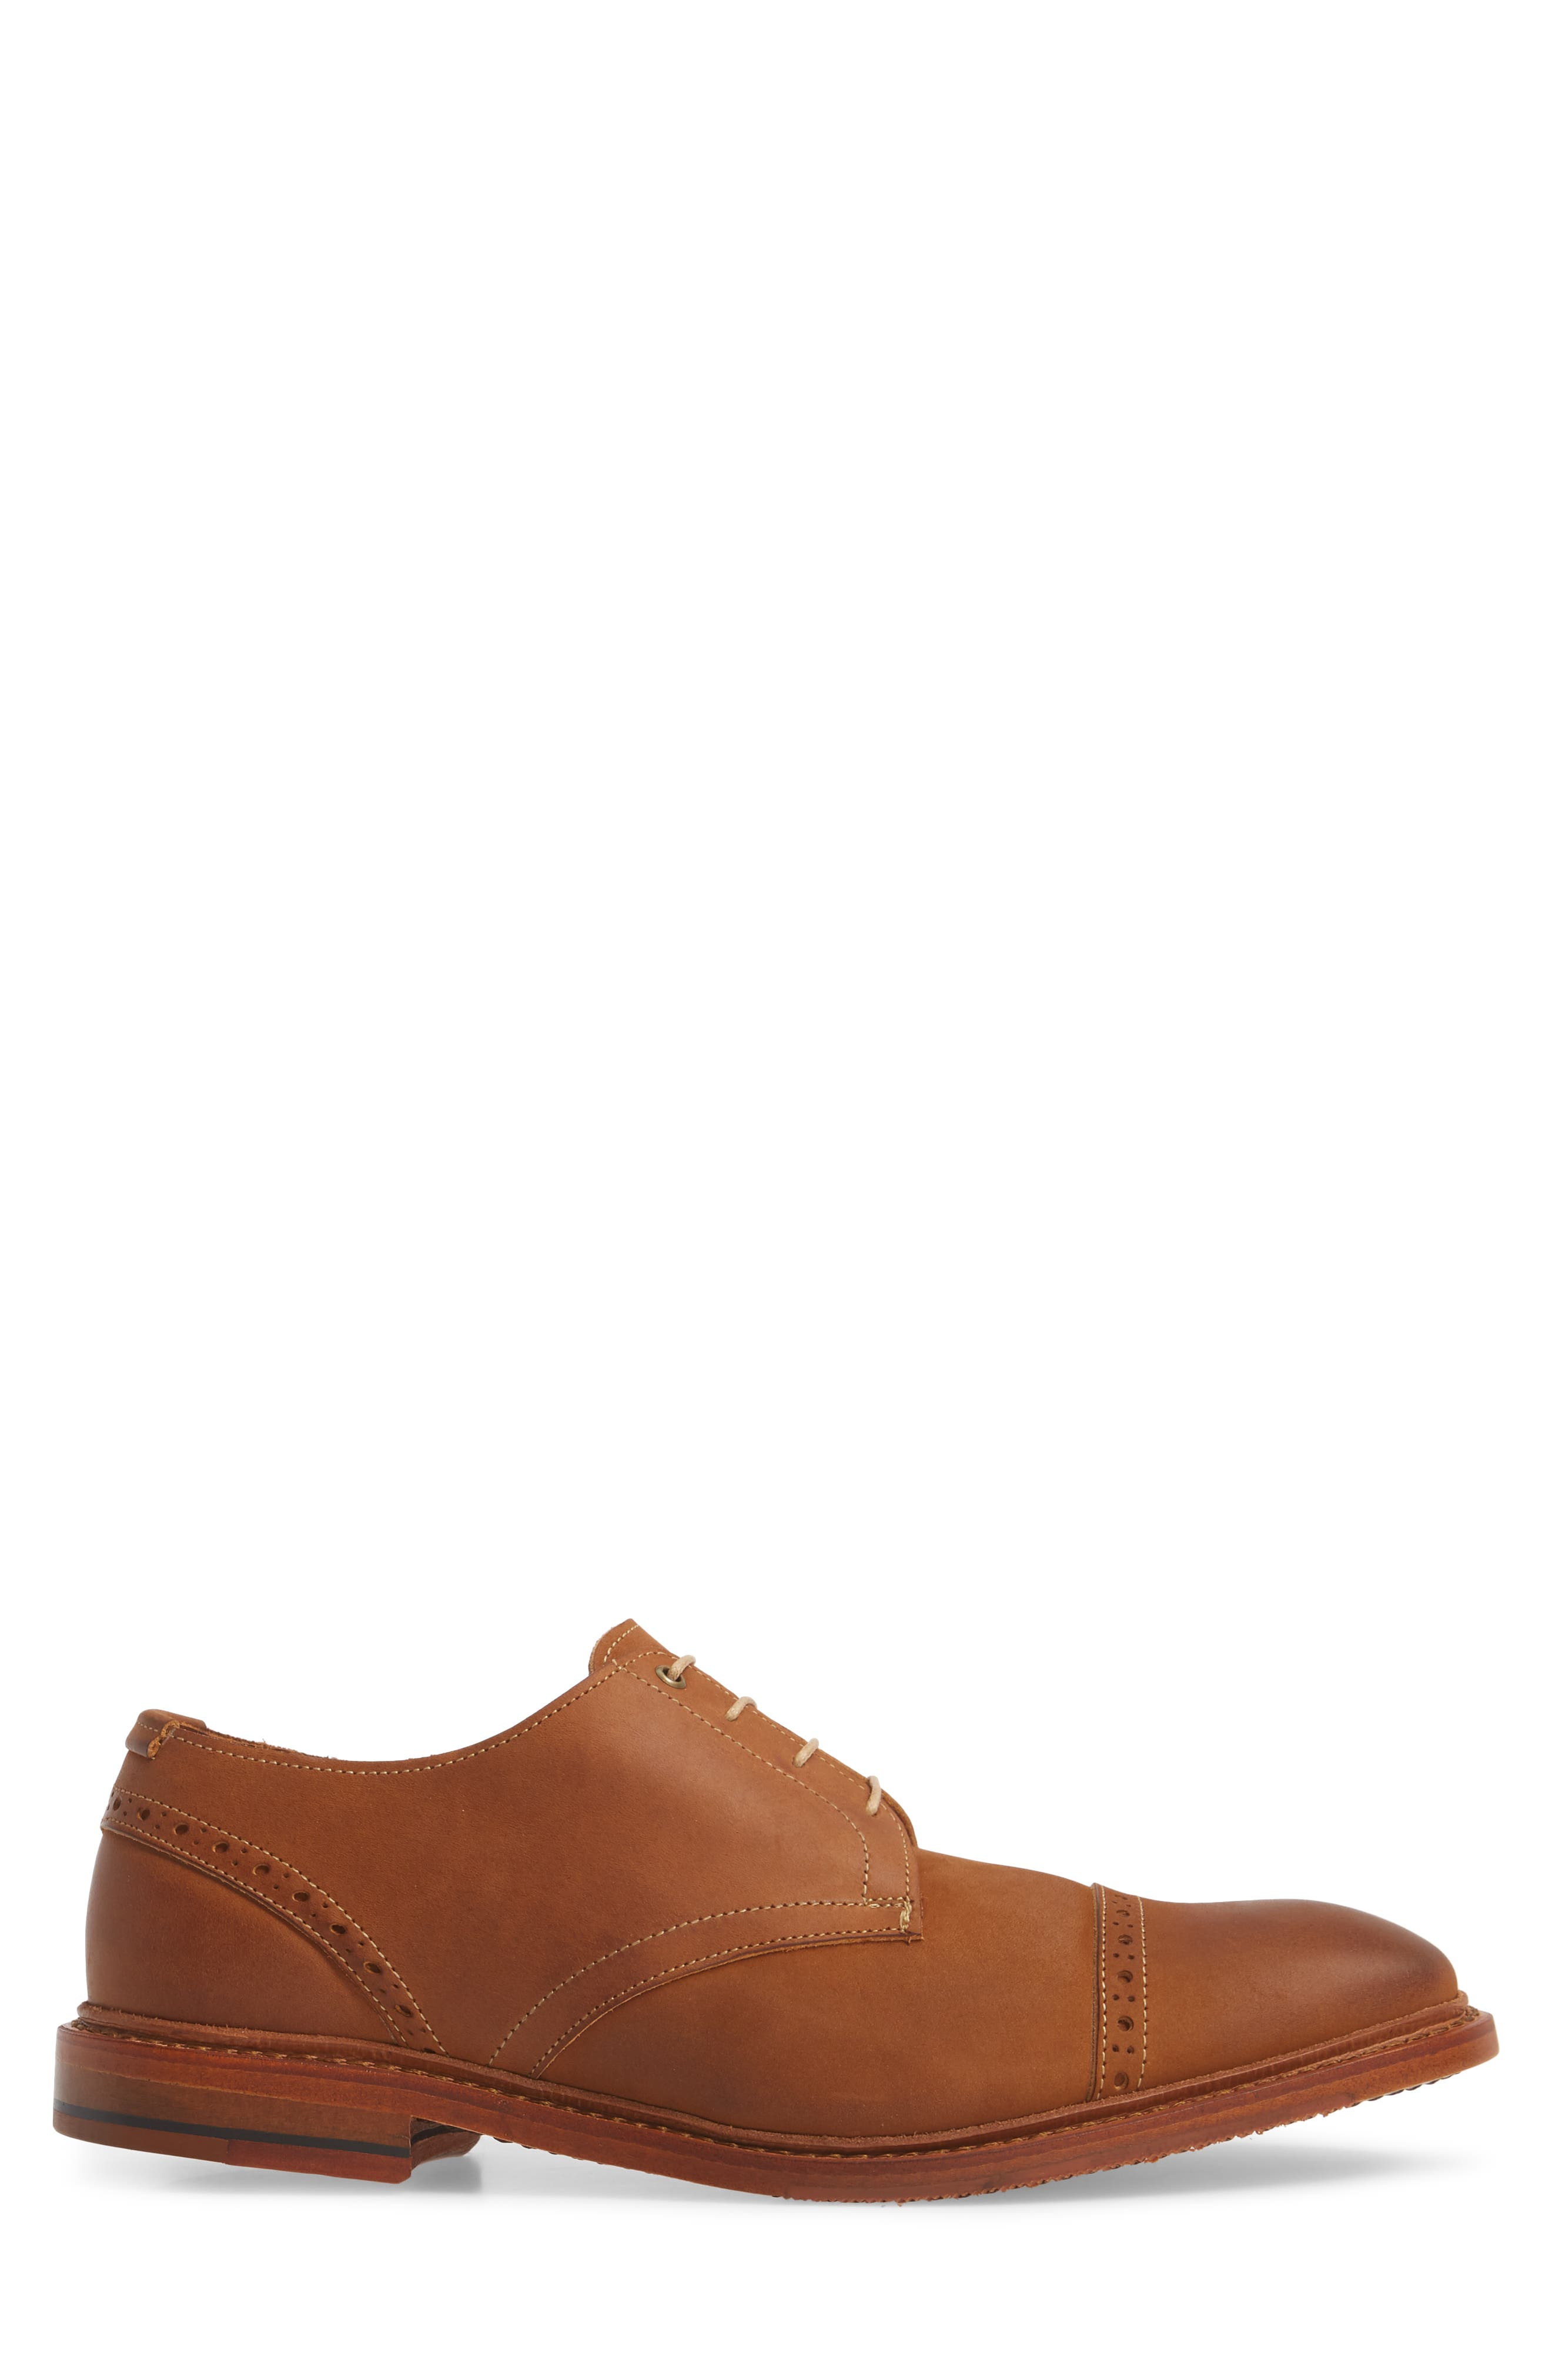 Kitsap Cap Toe Derby,                             Alternate thumbnail 3, color,                             TAN LEATHER